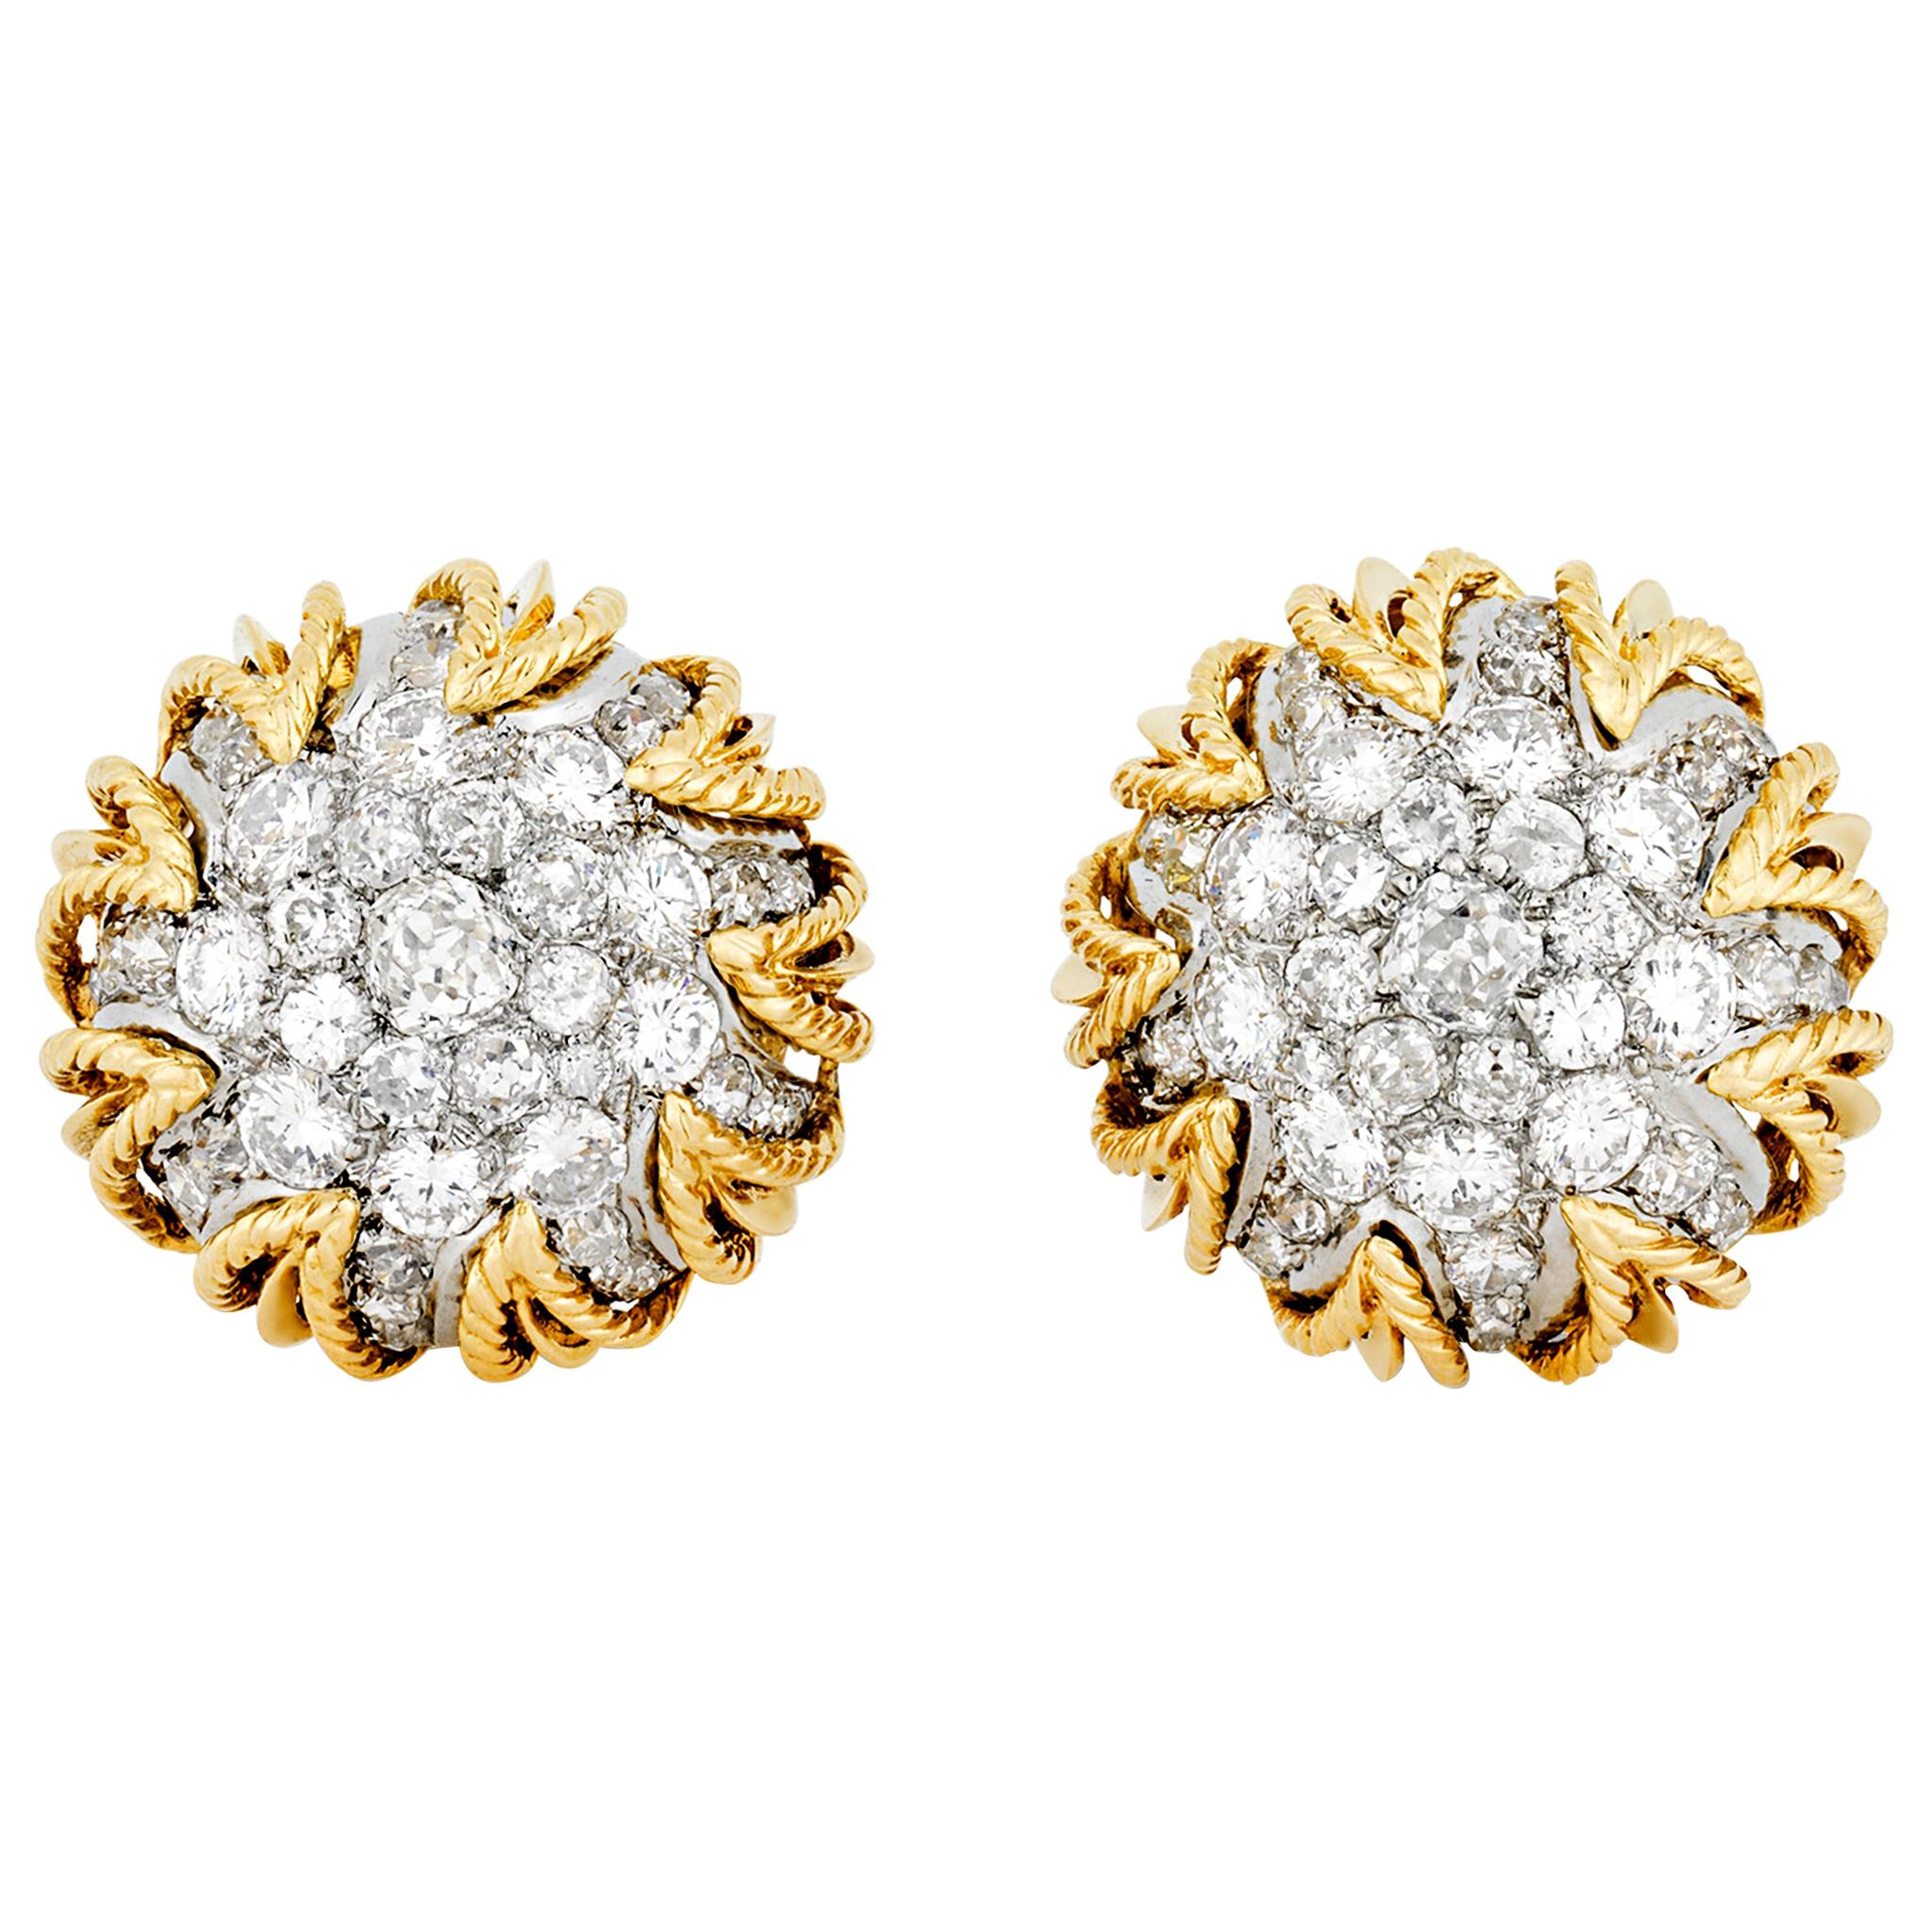 Van Cleef & Arpels Gold and Diamond Earrings